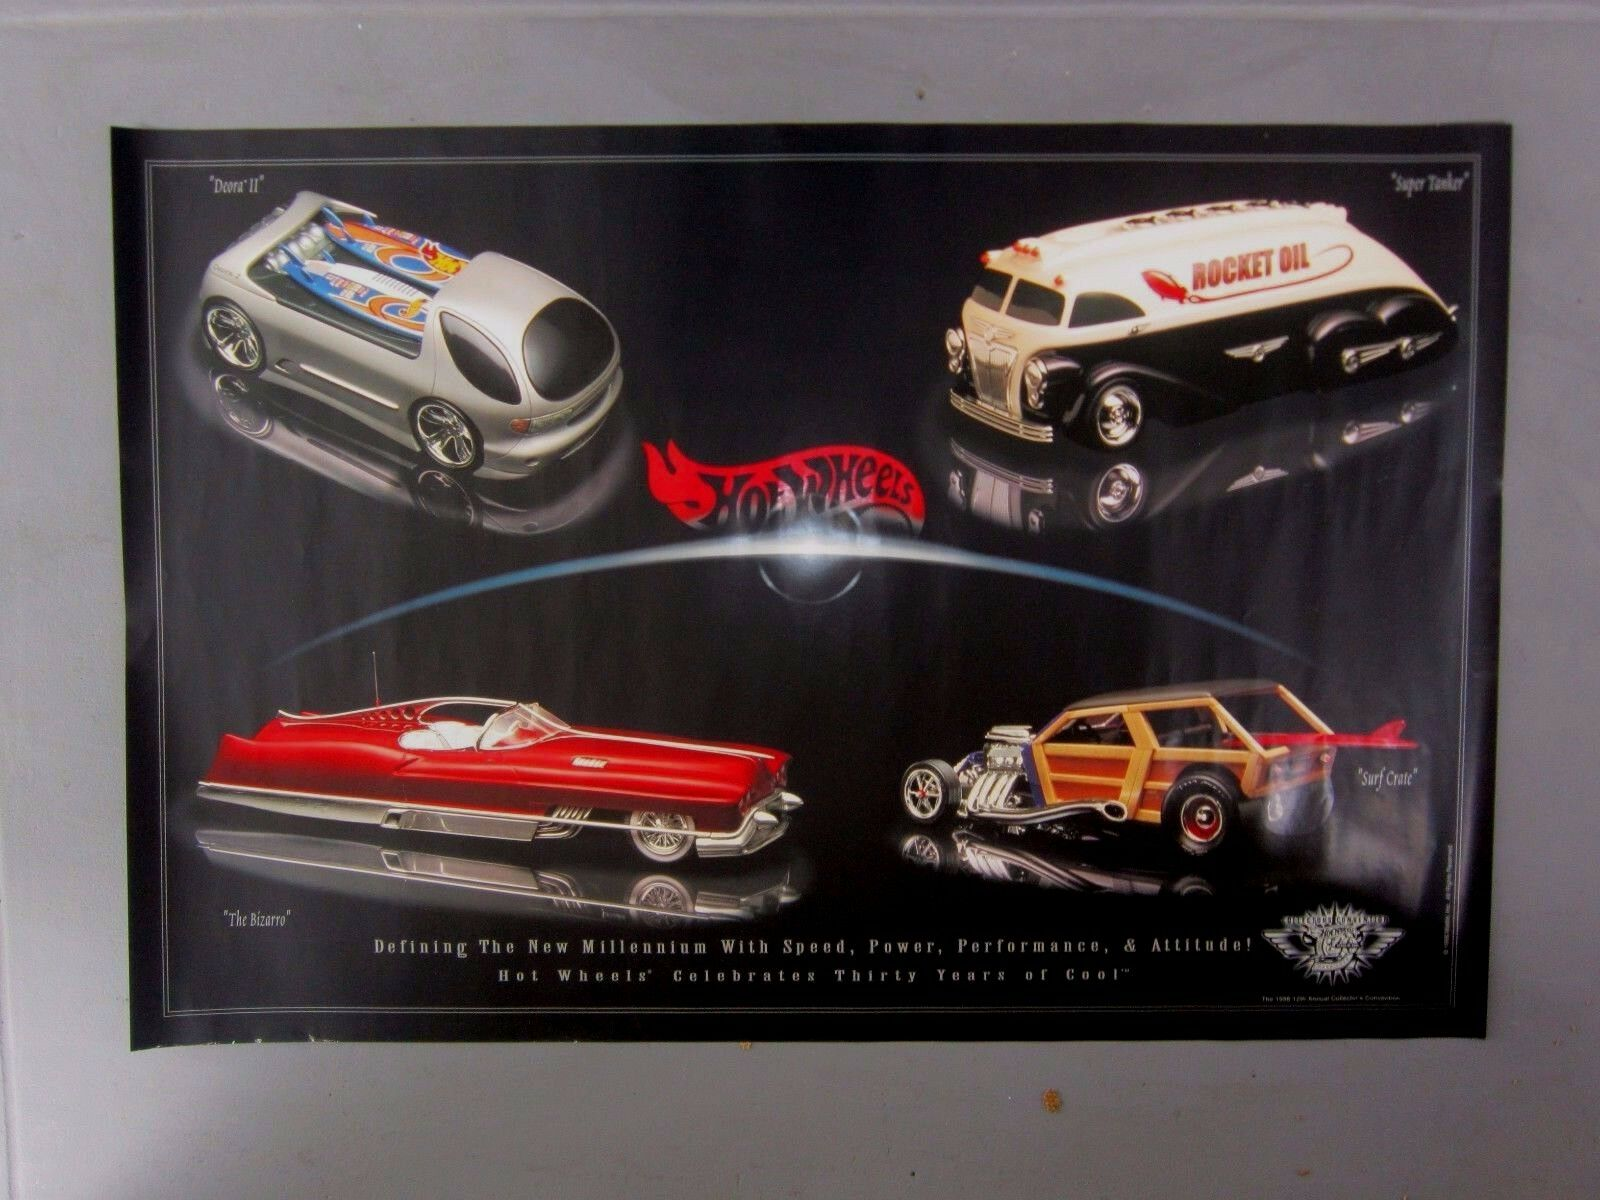 HOT WHEELS 1998 POSTER ANN Surf Crate Deora II 30 YEARS 1998 DIE CAST Convention